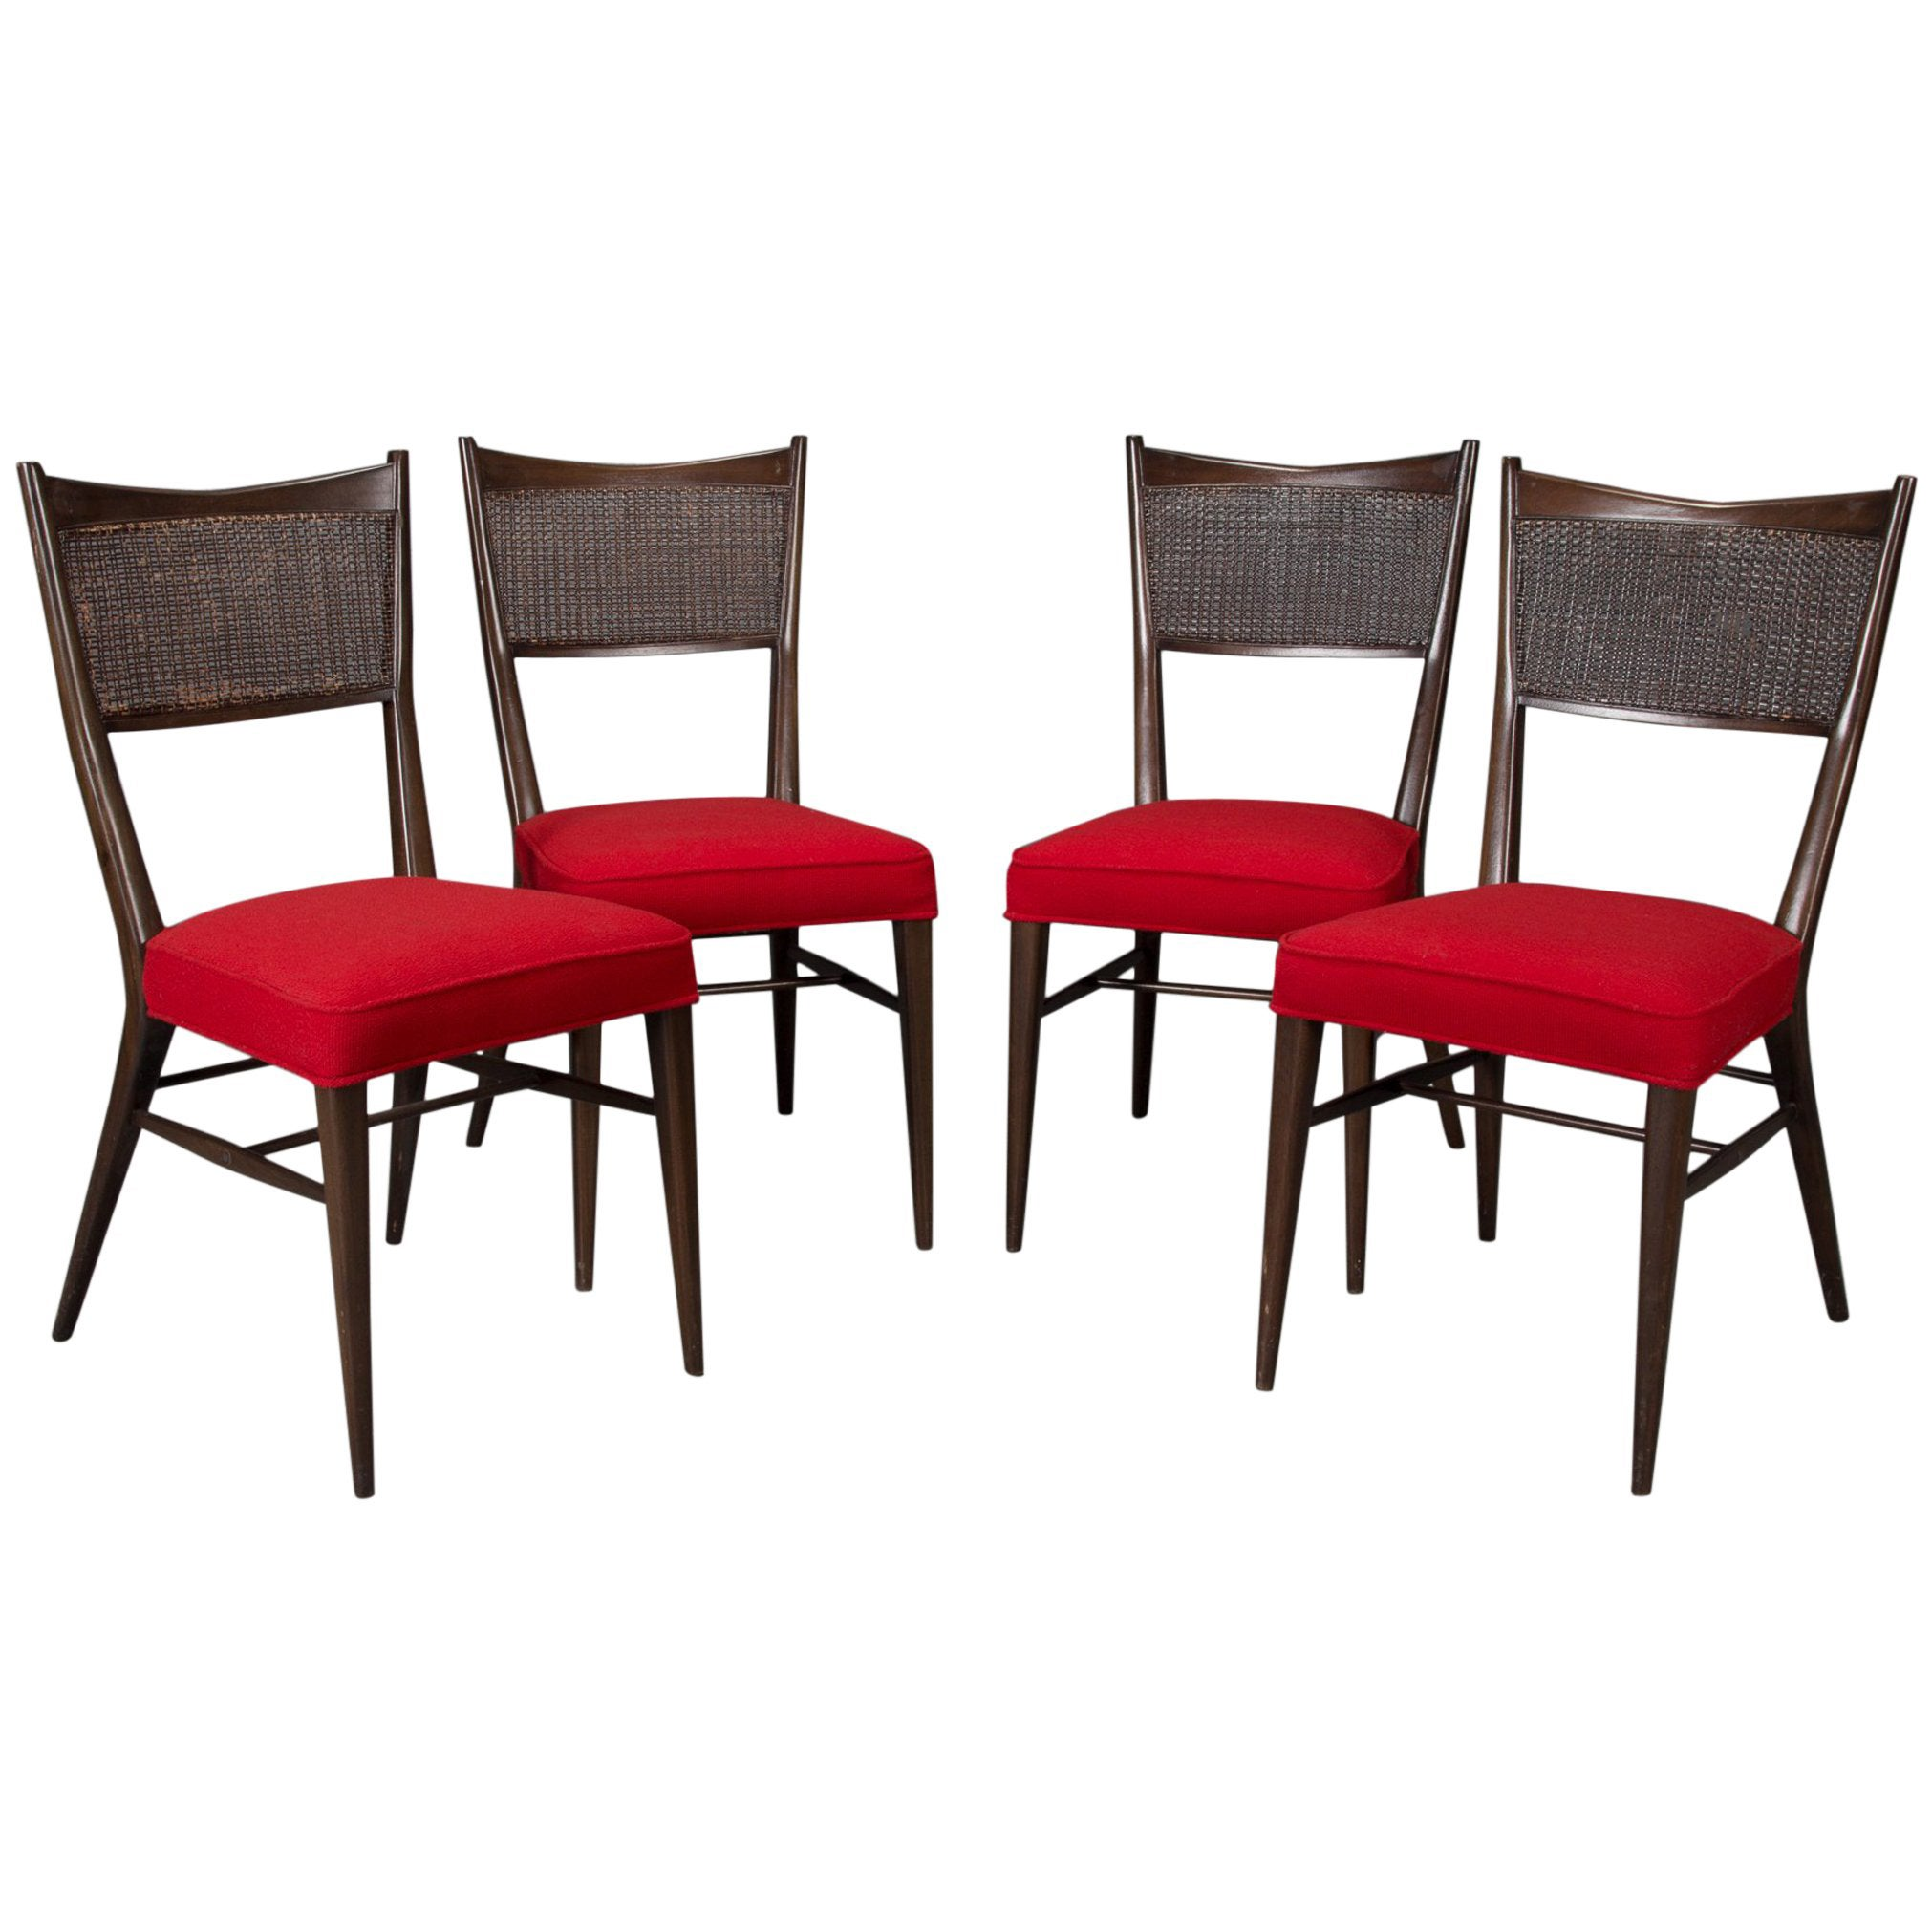 Set of Four Irwin Collection Dining Chairs by Paul McCobb for Directional